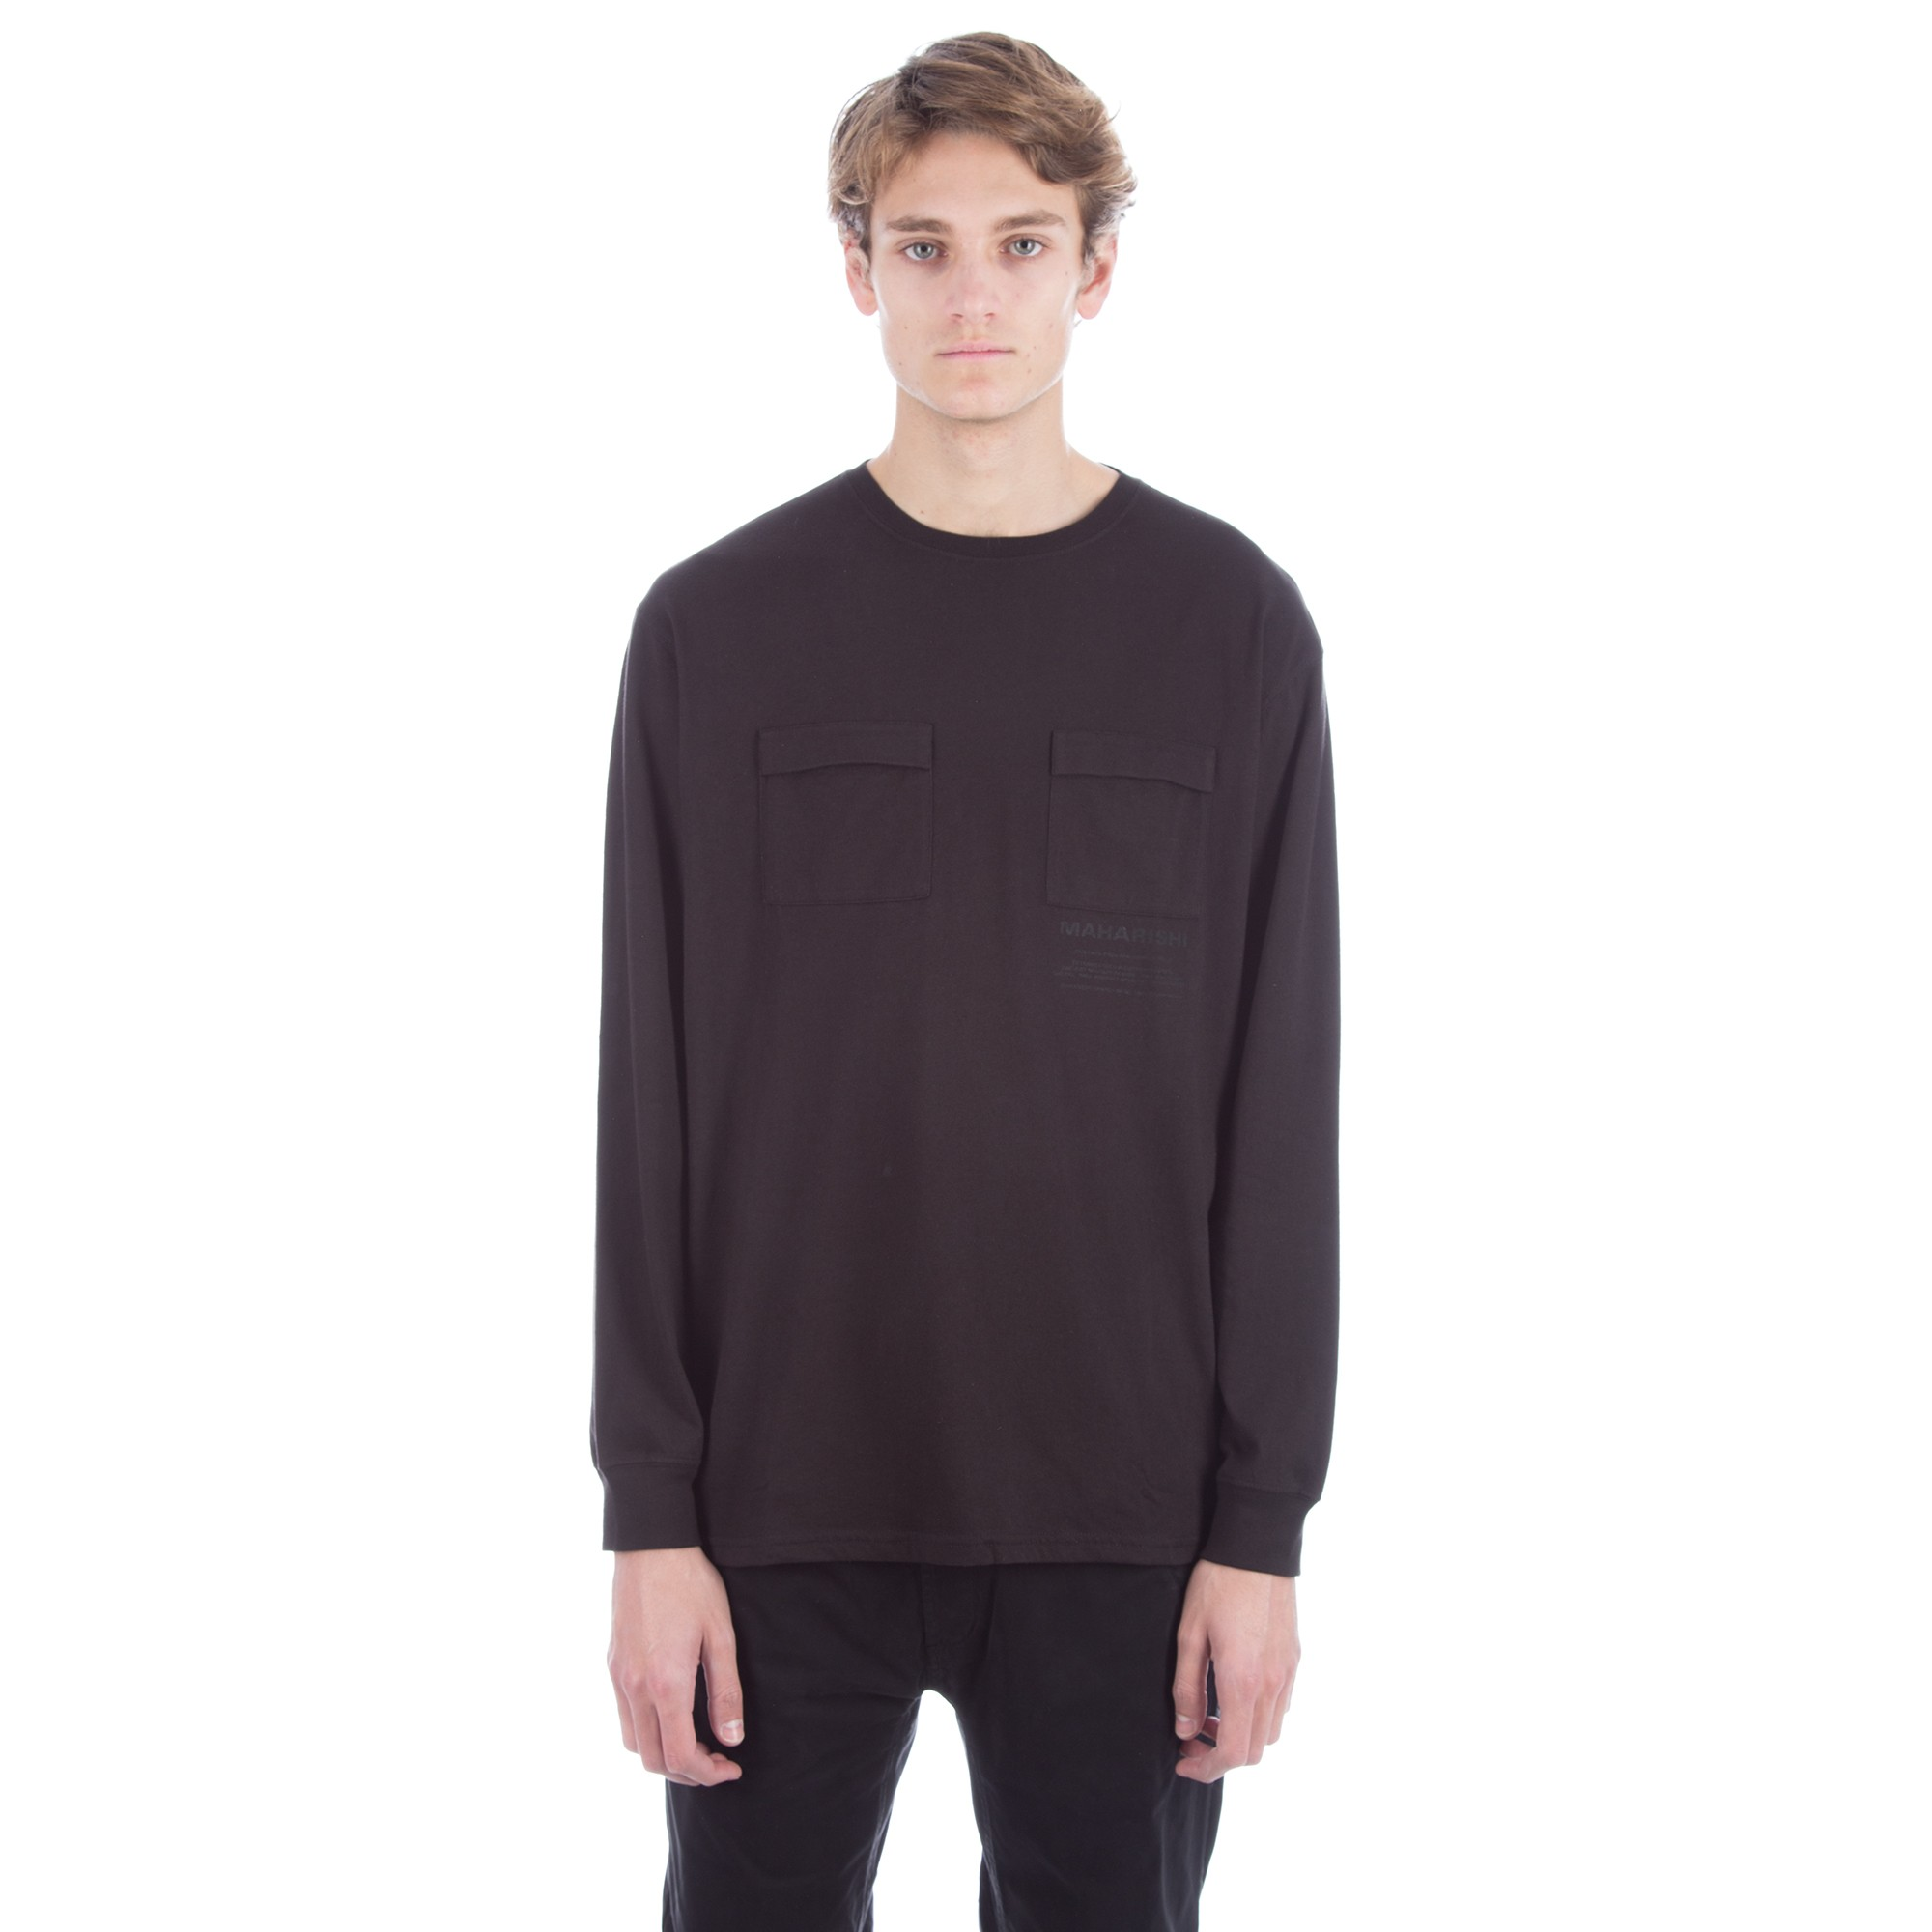 Black t shirt long sleeve - For Full Information On Delivery And Customs Click Here